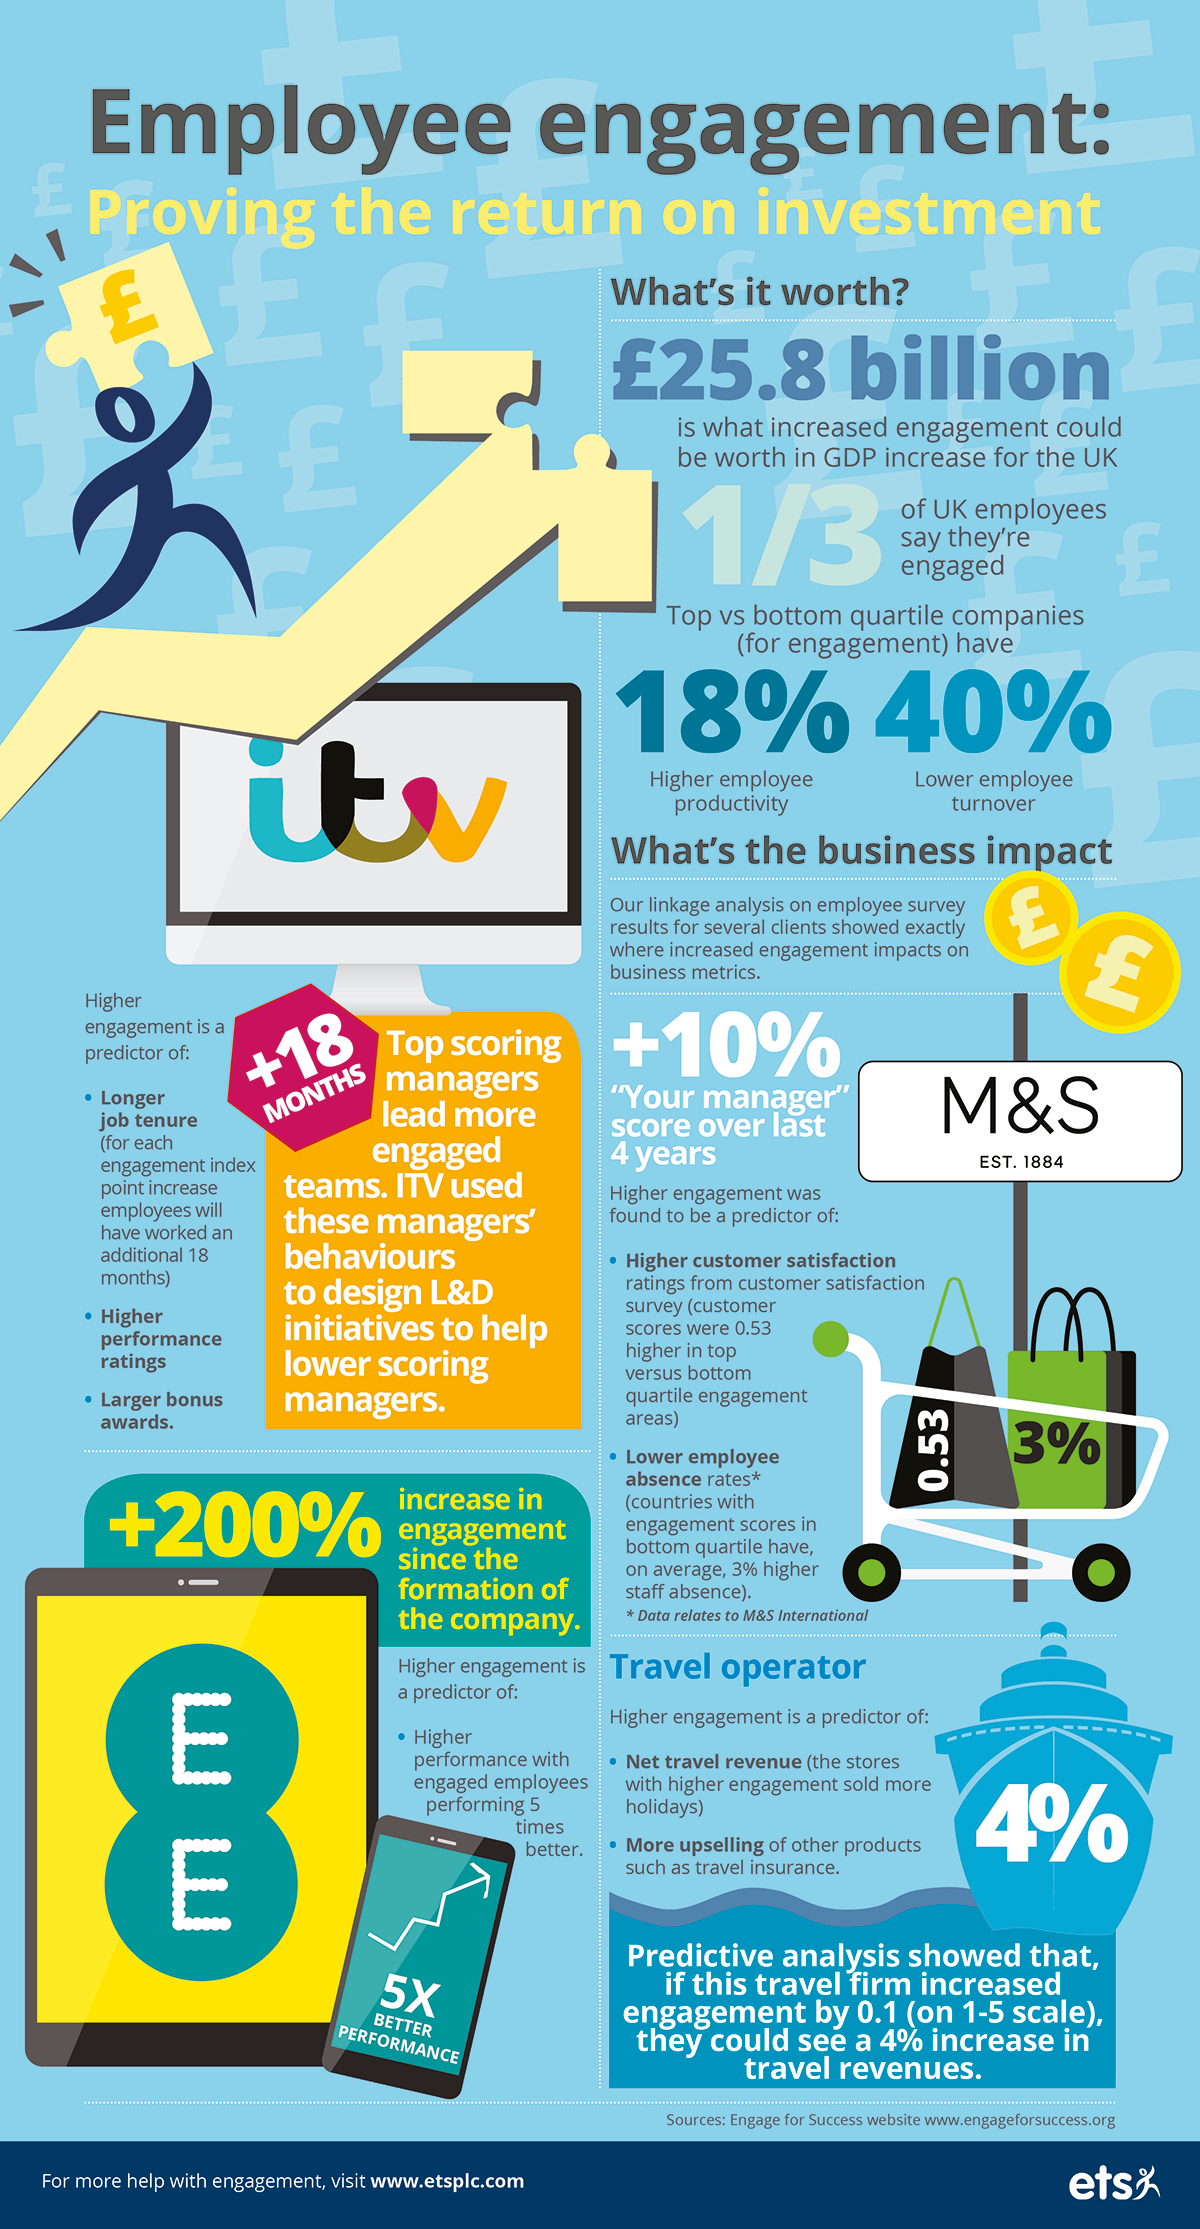 ETS_Employee_Engagement_Infographic